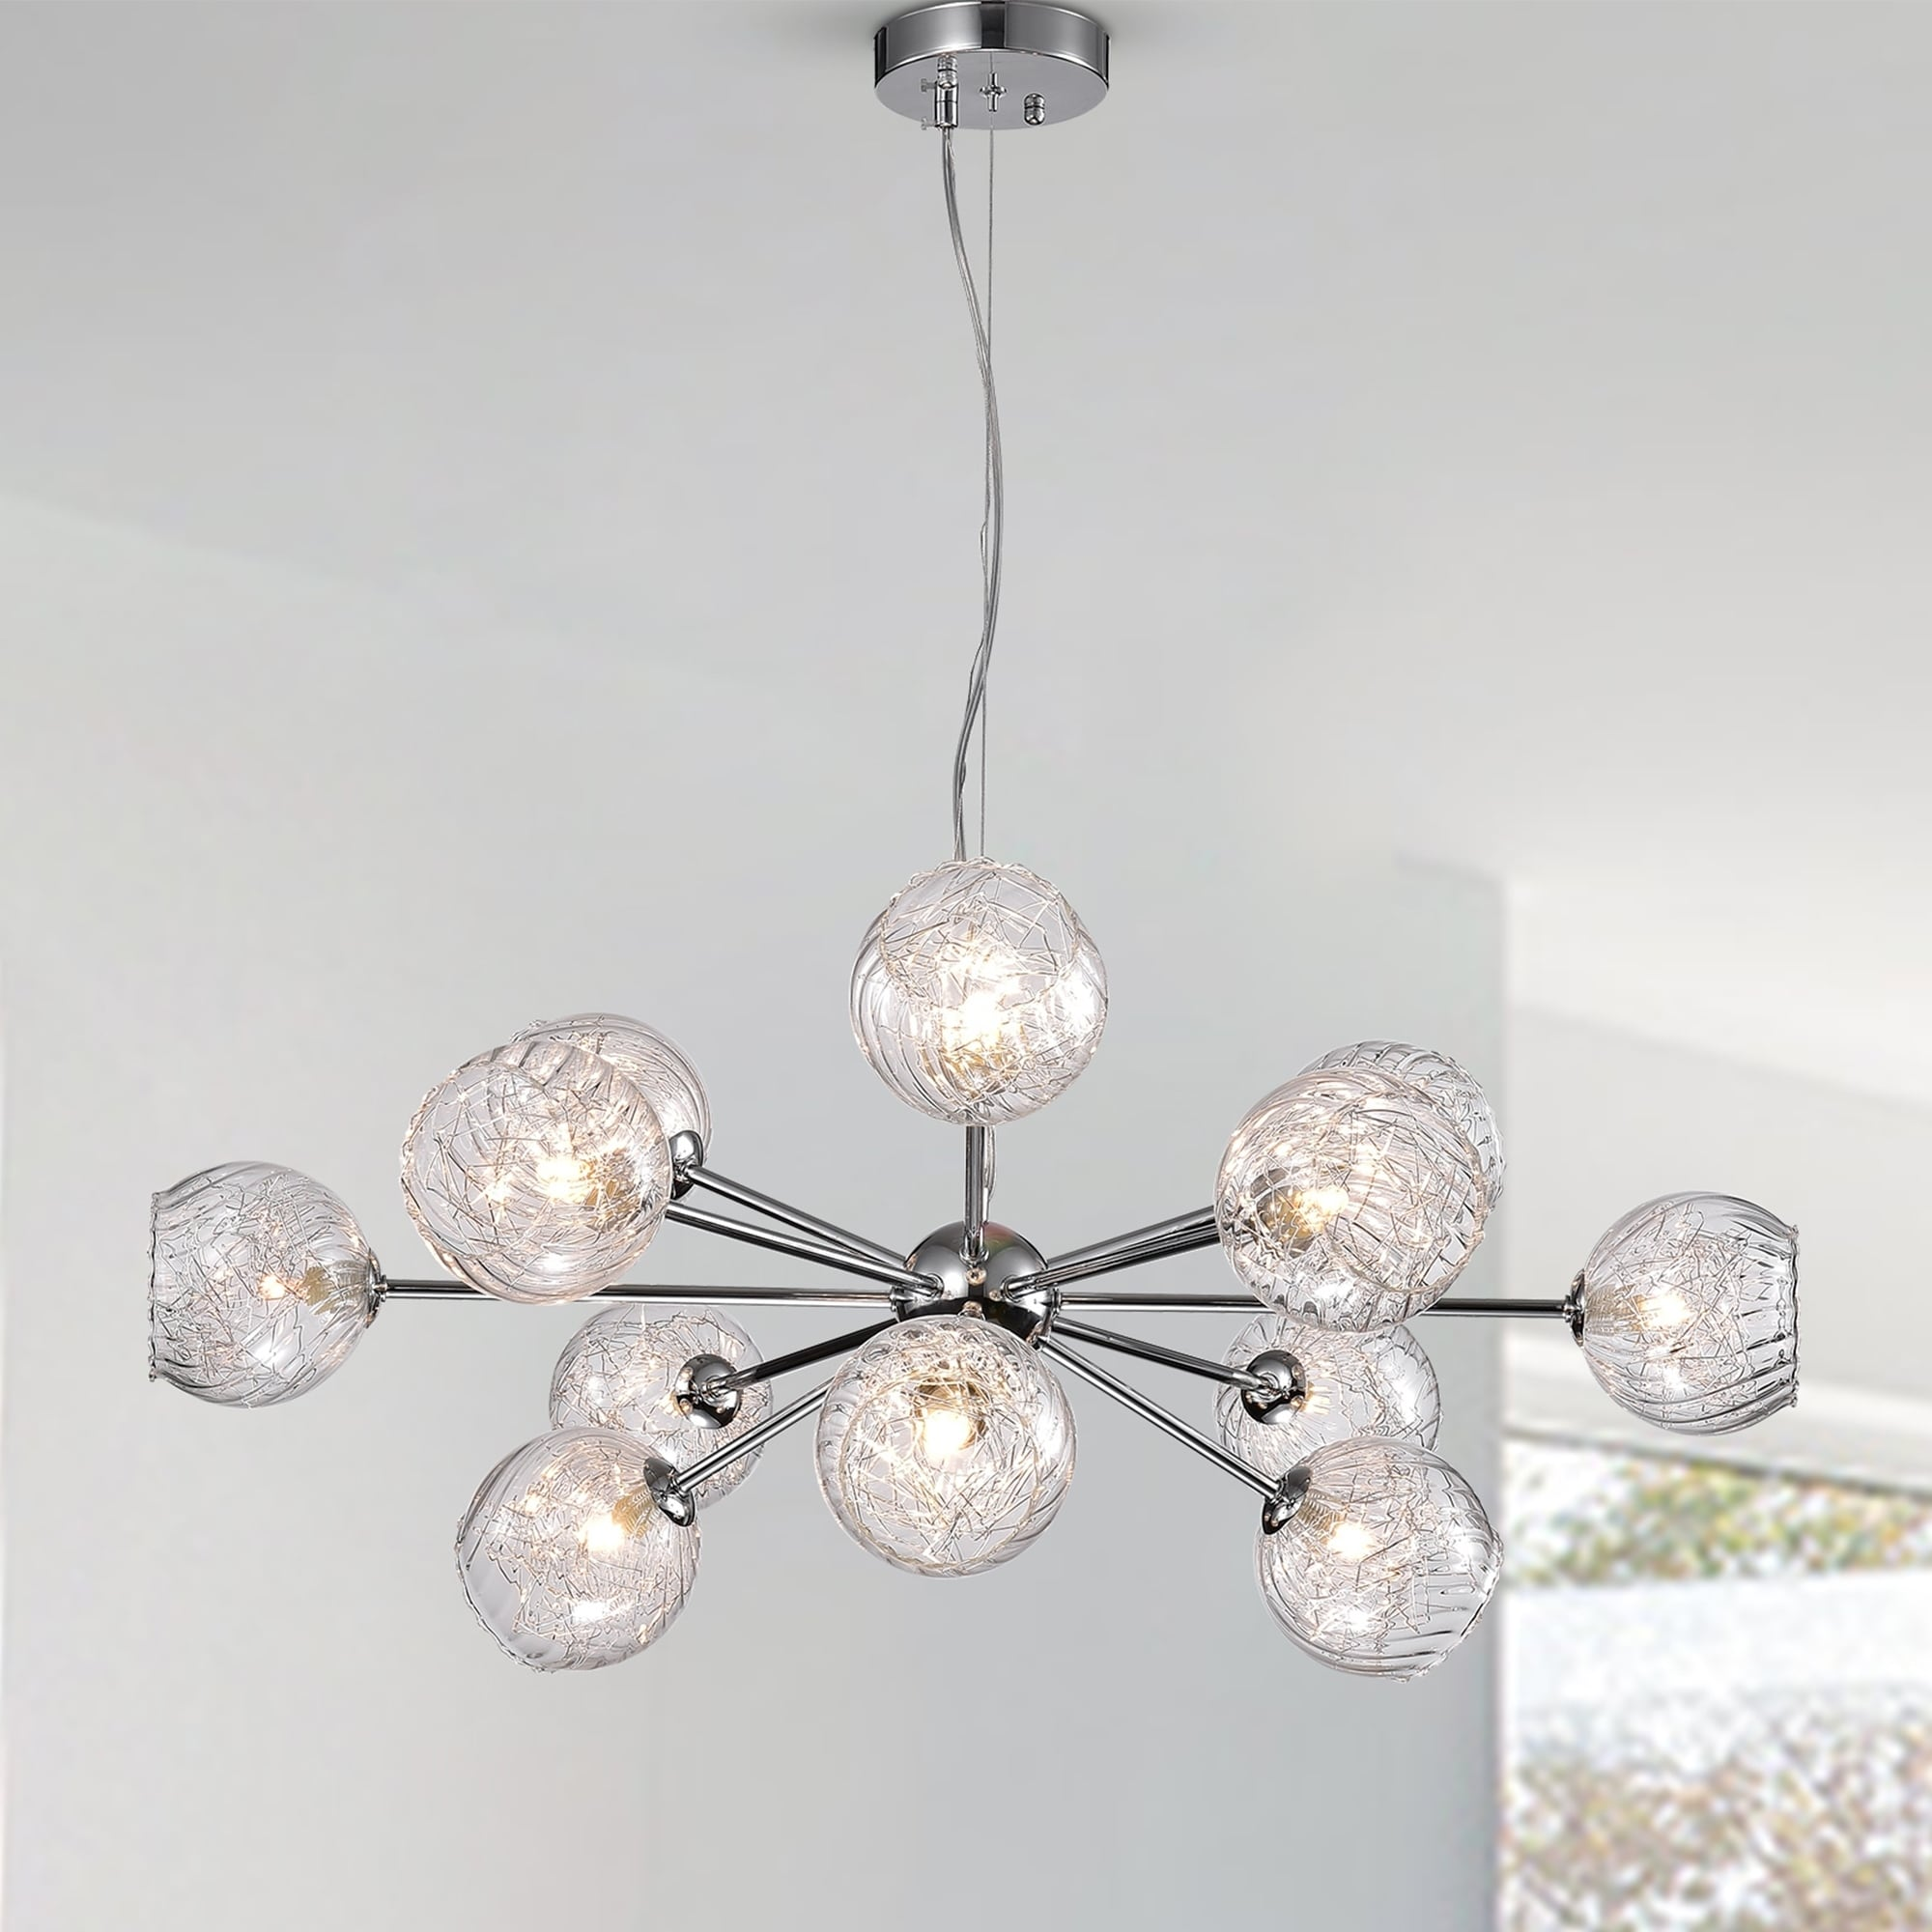 pendant clear replacement shades image shade of glass light hanging chandelier